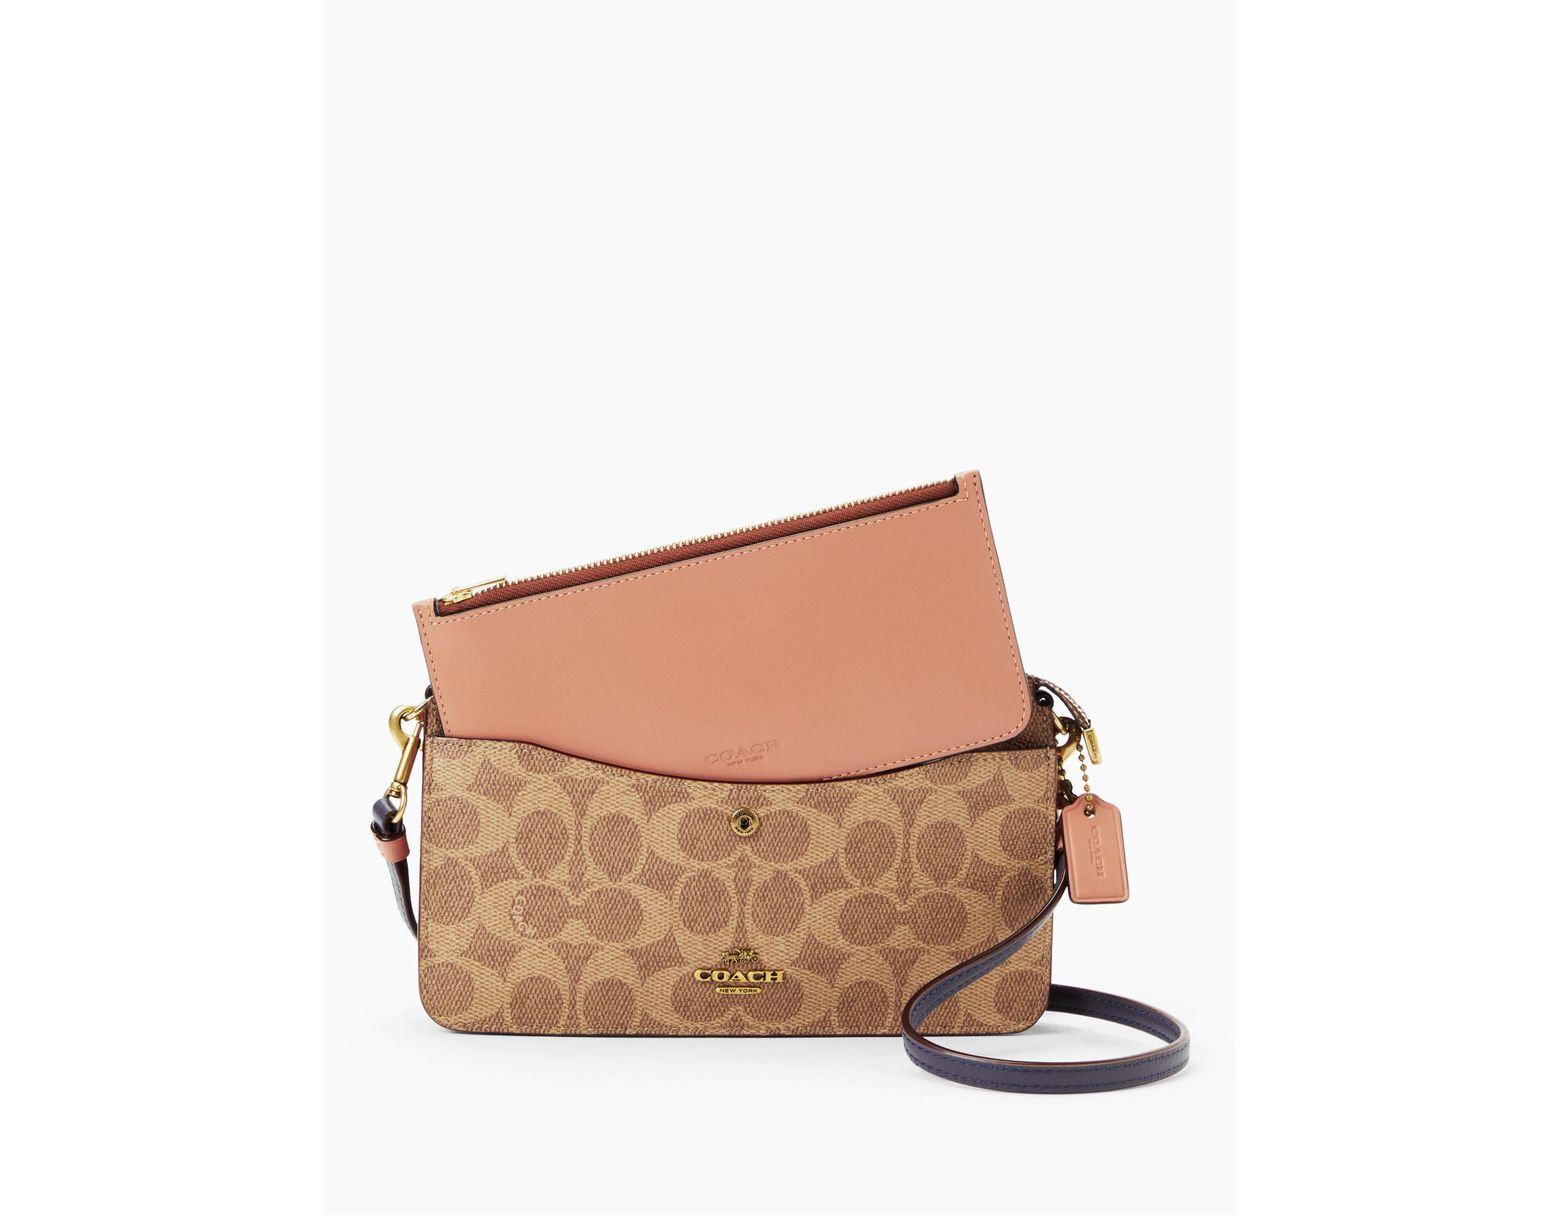 6f15f509f1c COACH Noa Signature Cross Body Bag in Brown - Lyst